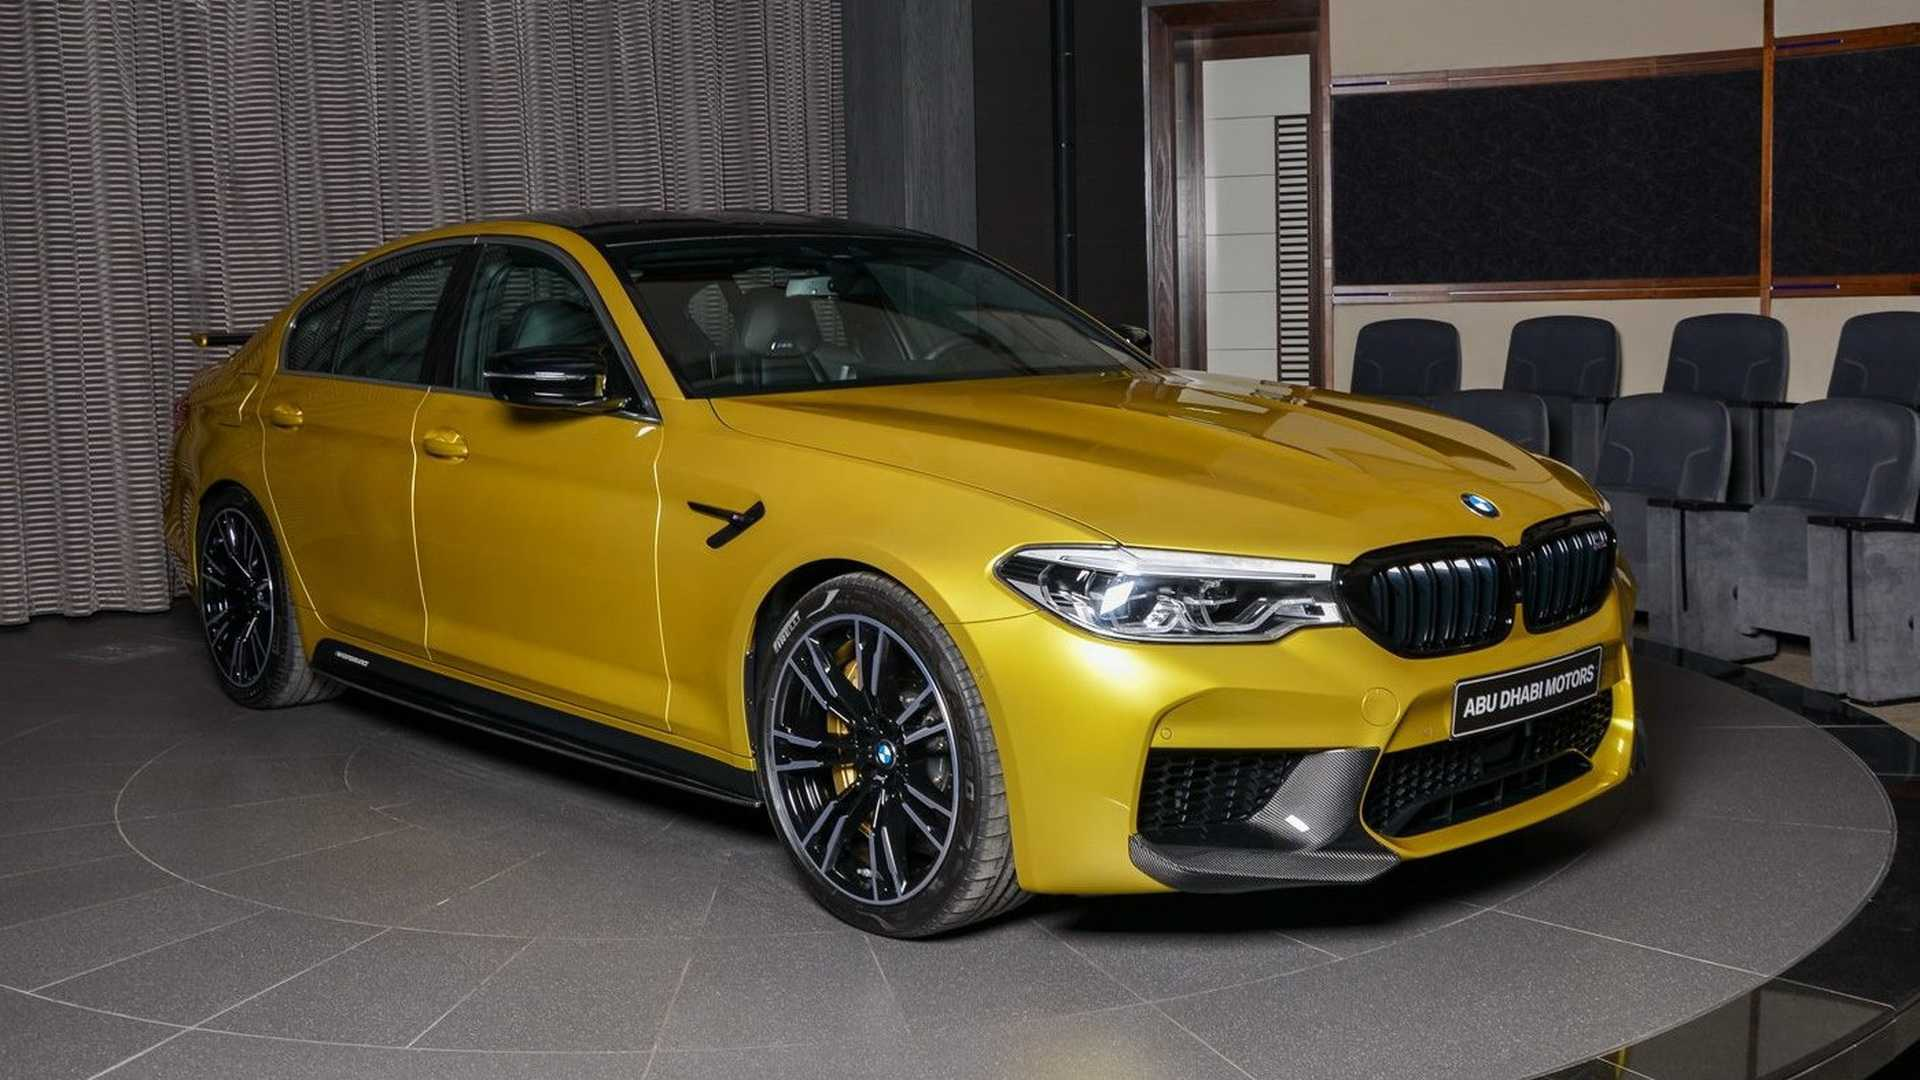 Bmw M5 Competition Austin Yellow Is As Flashy As A Supercar